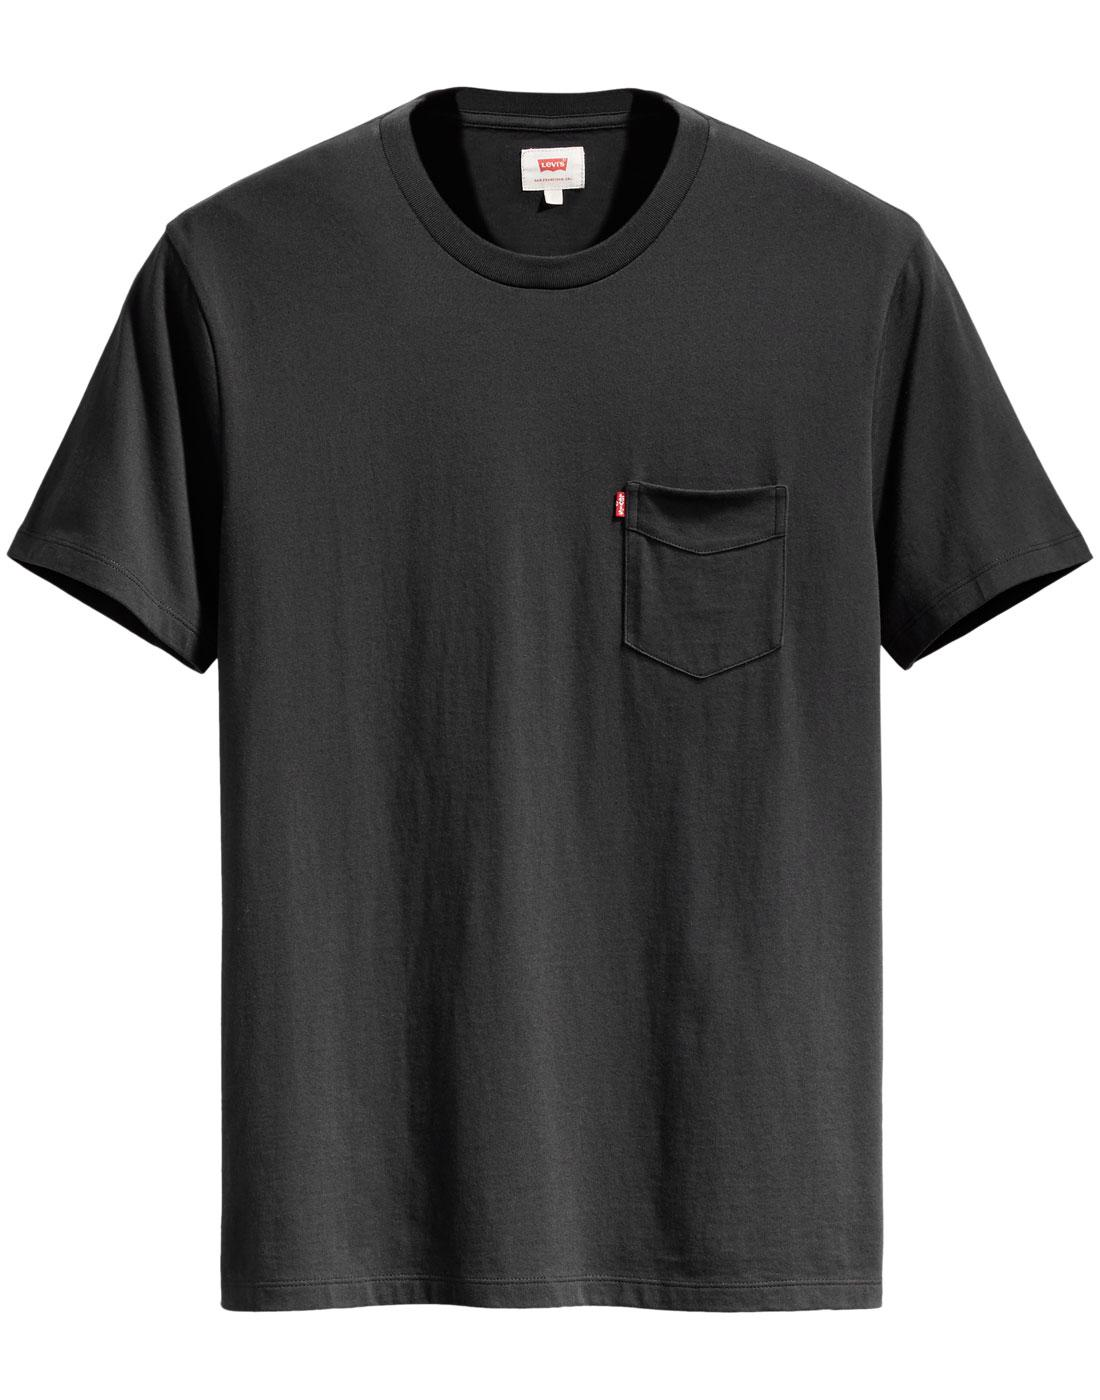 LEVI'S Retro Setin Sunset Pocket T-Shirt (Black)